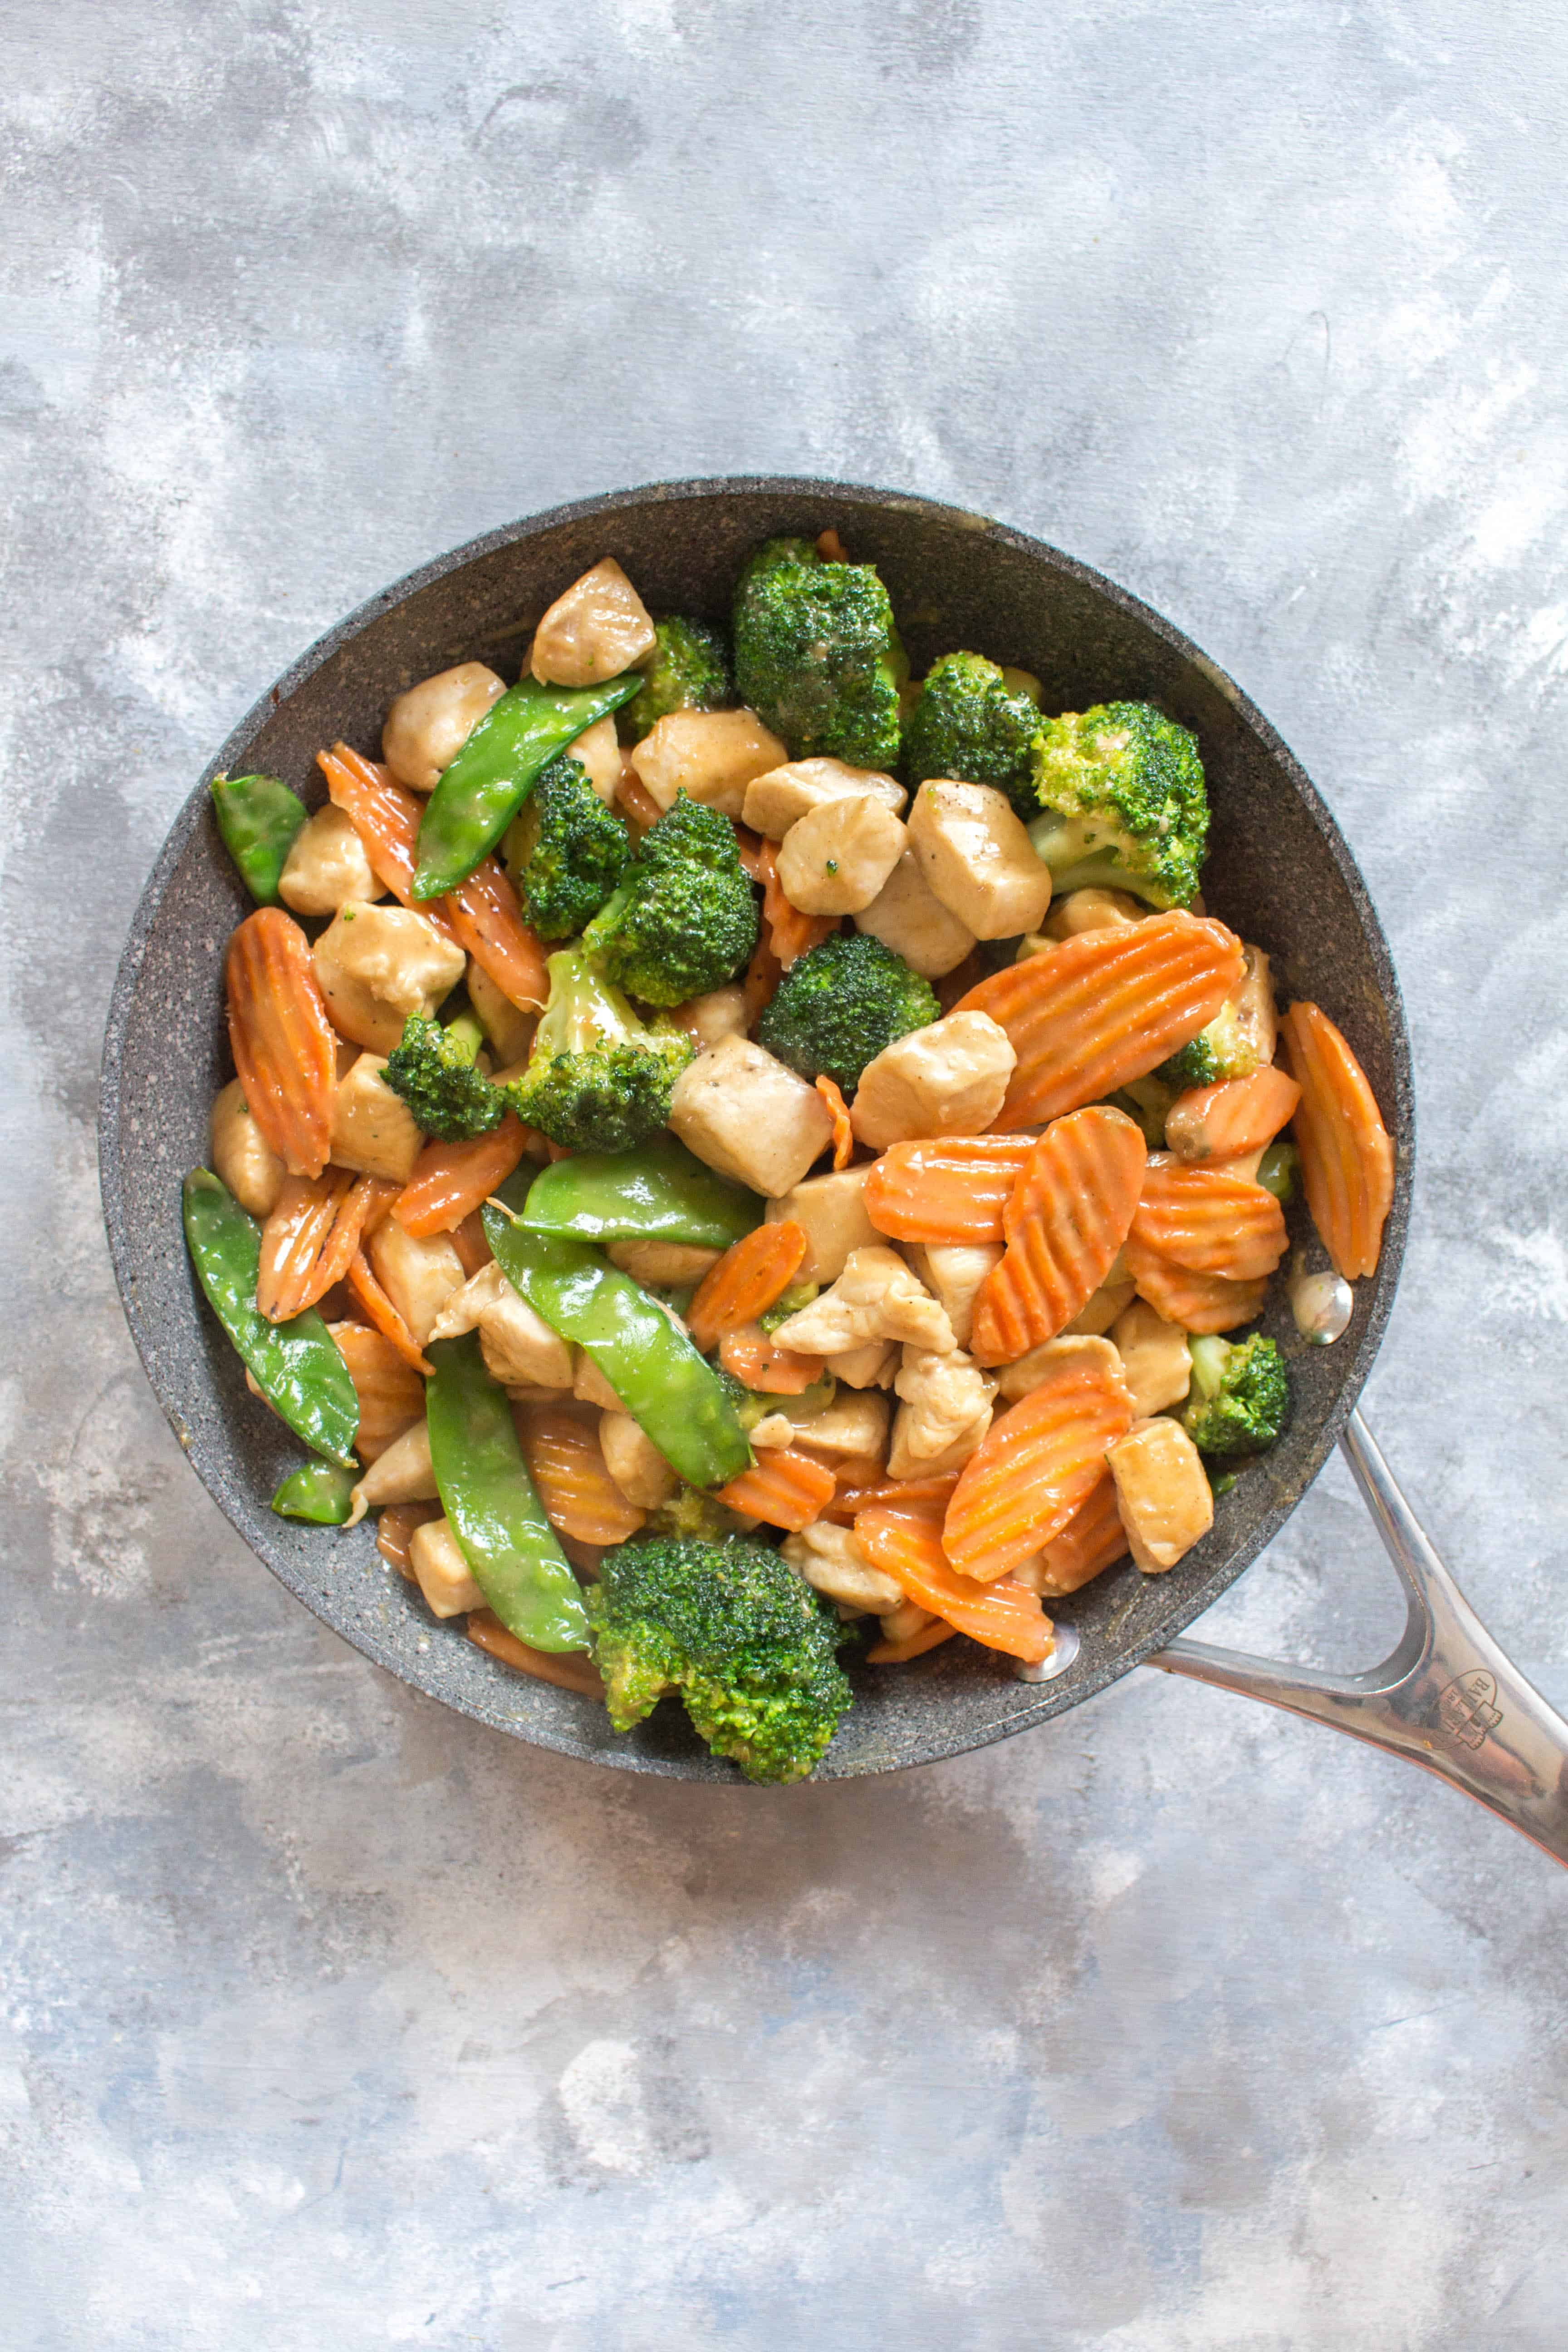 Chicken Stir Fry Meal Prep in a pan